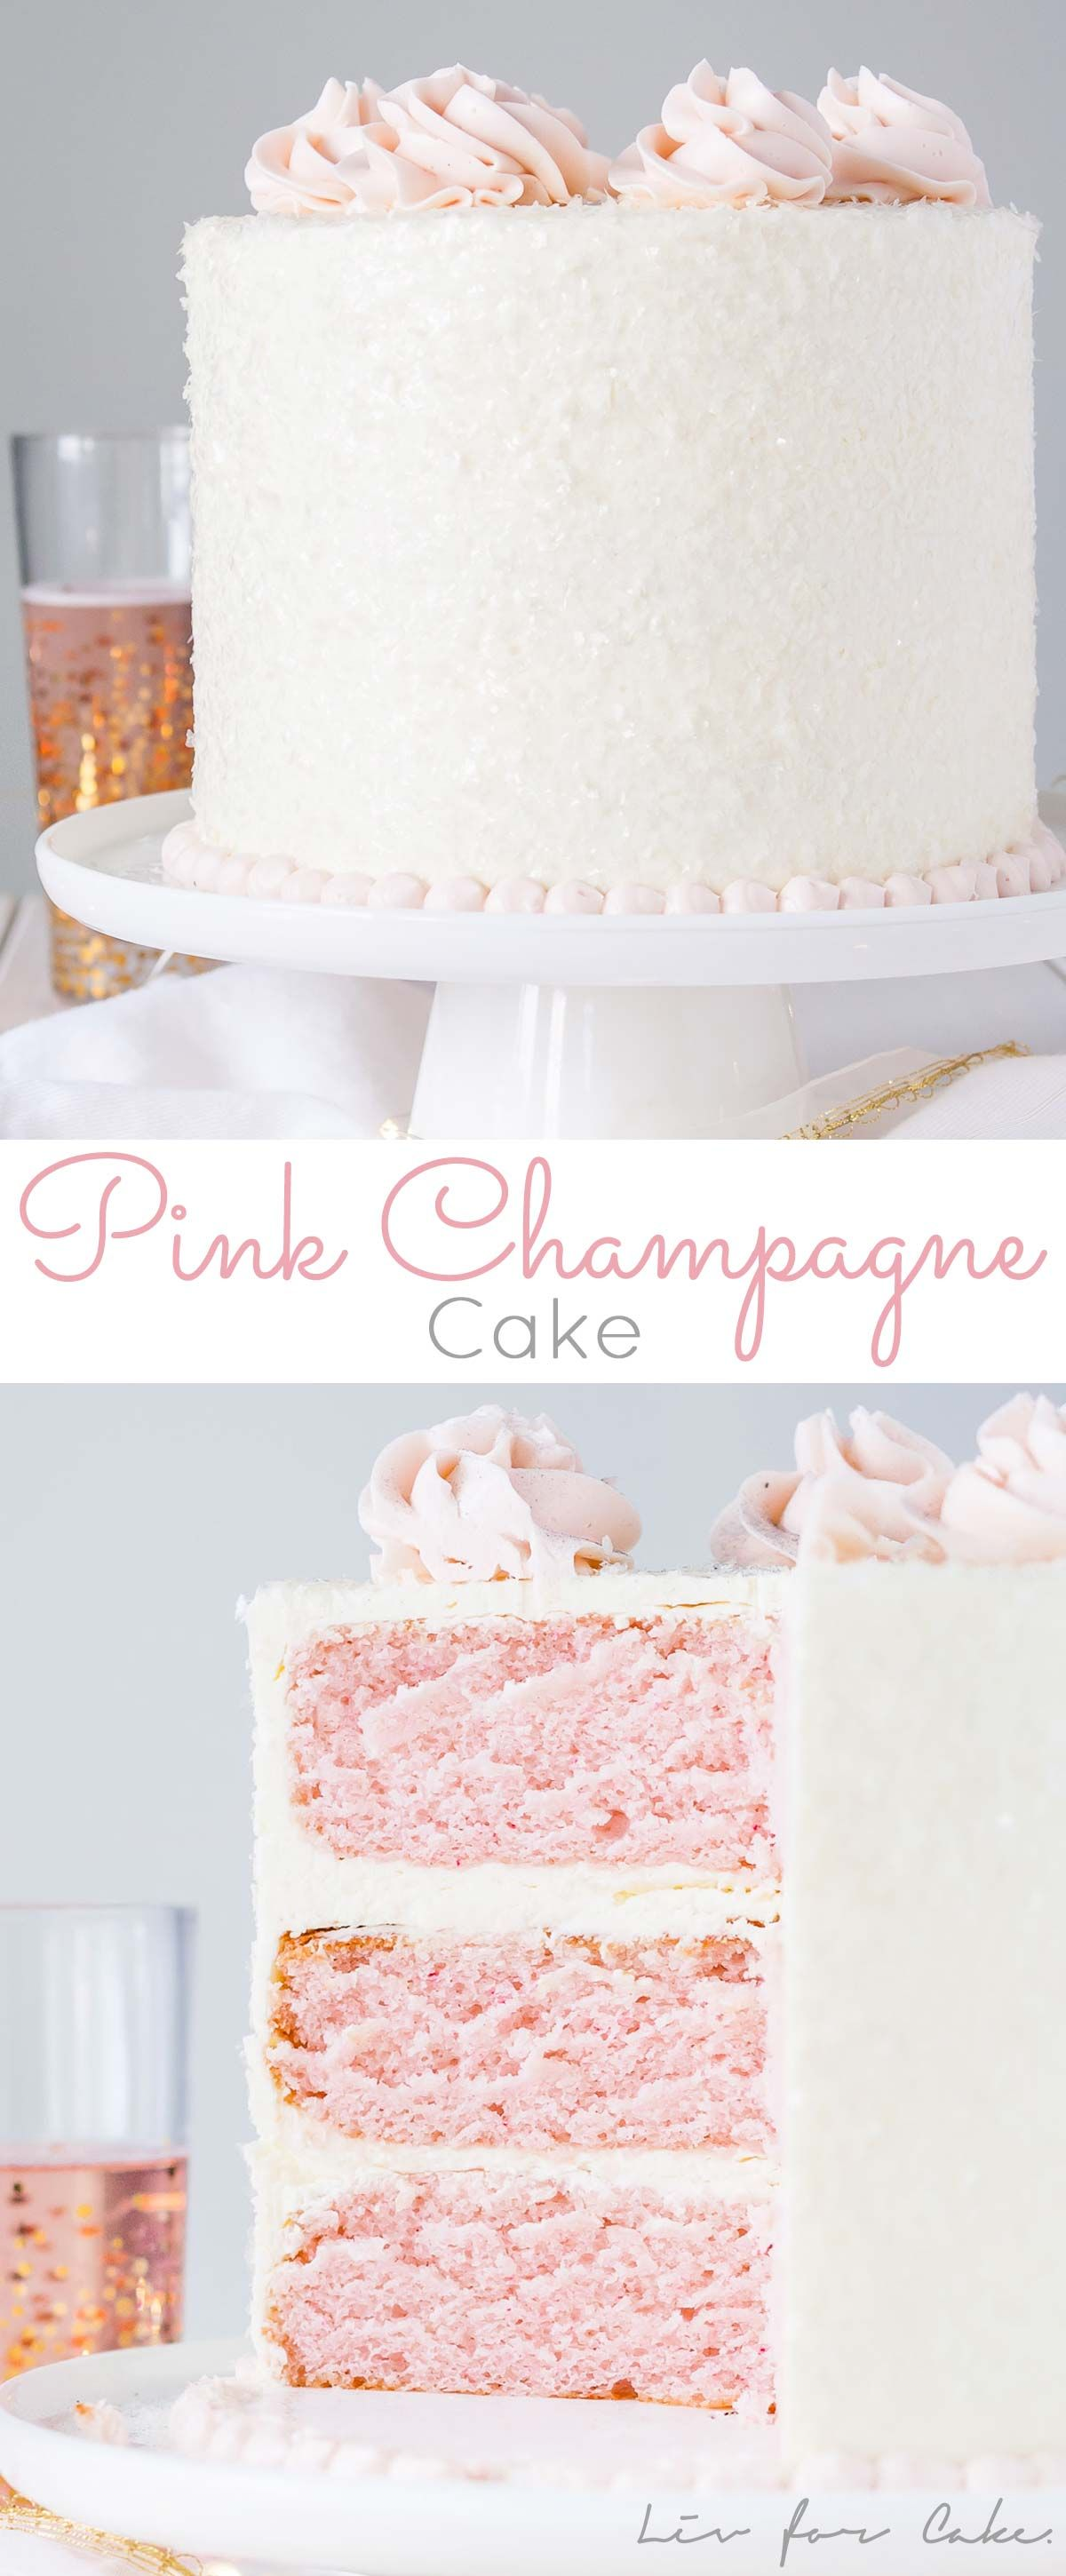 This Pink Champagne Cake Is The Perfect Way To Celebrate Any